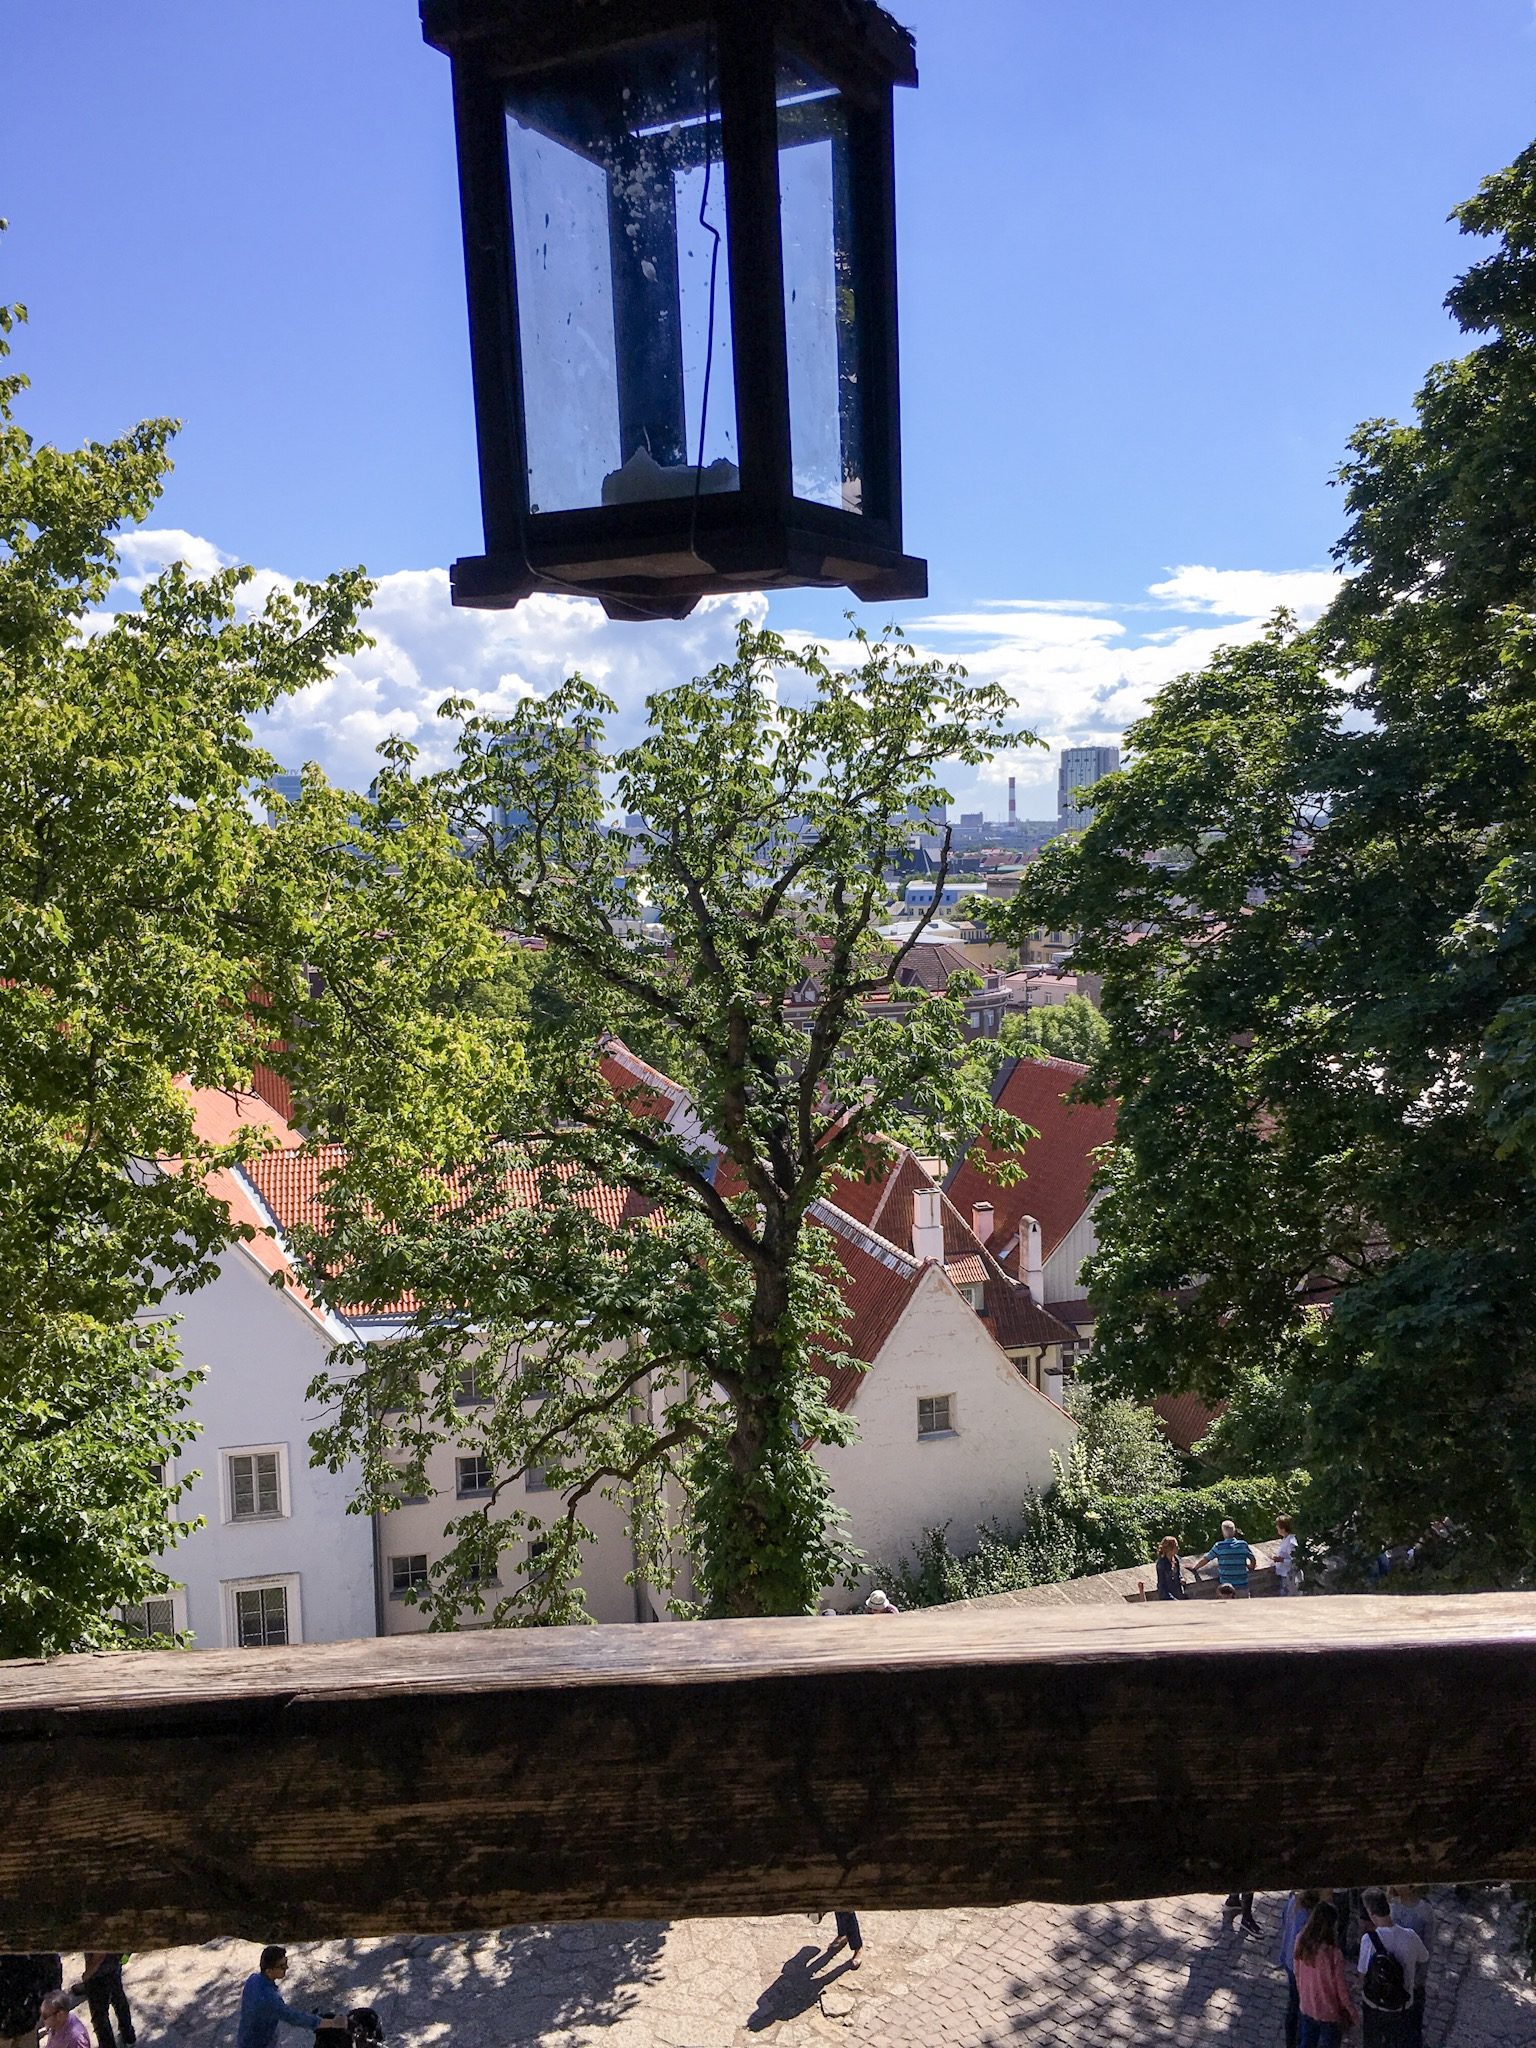 View from Cafe in Tallinn, Estonia